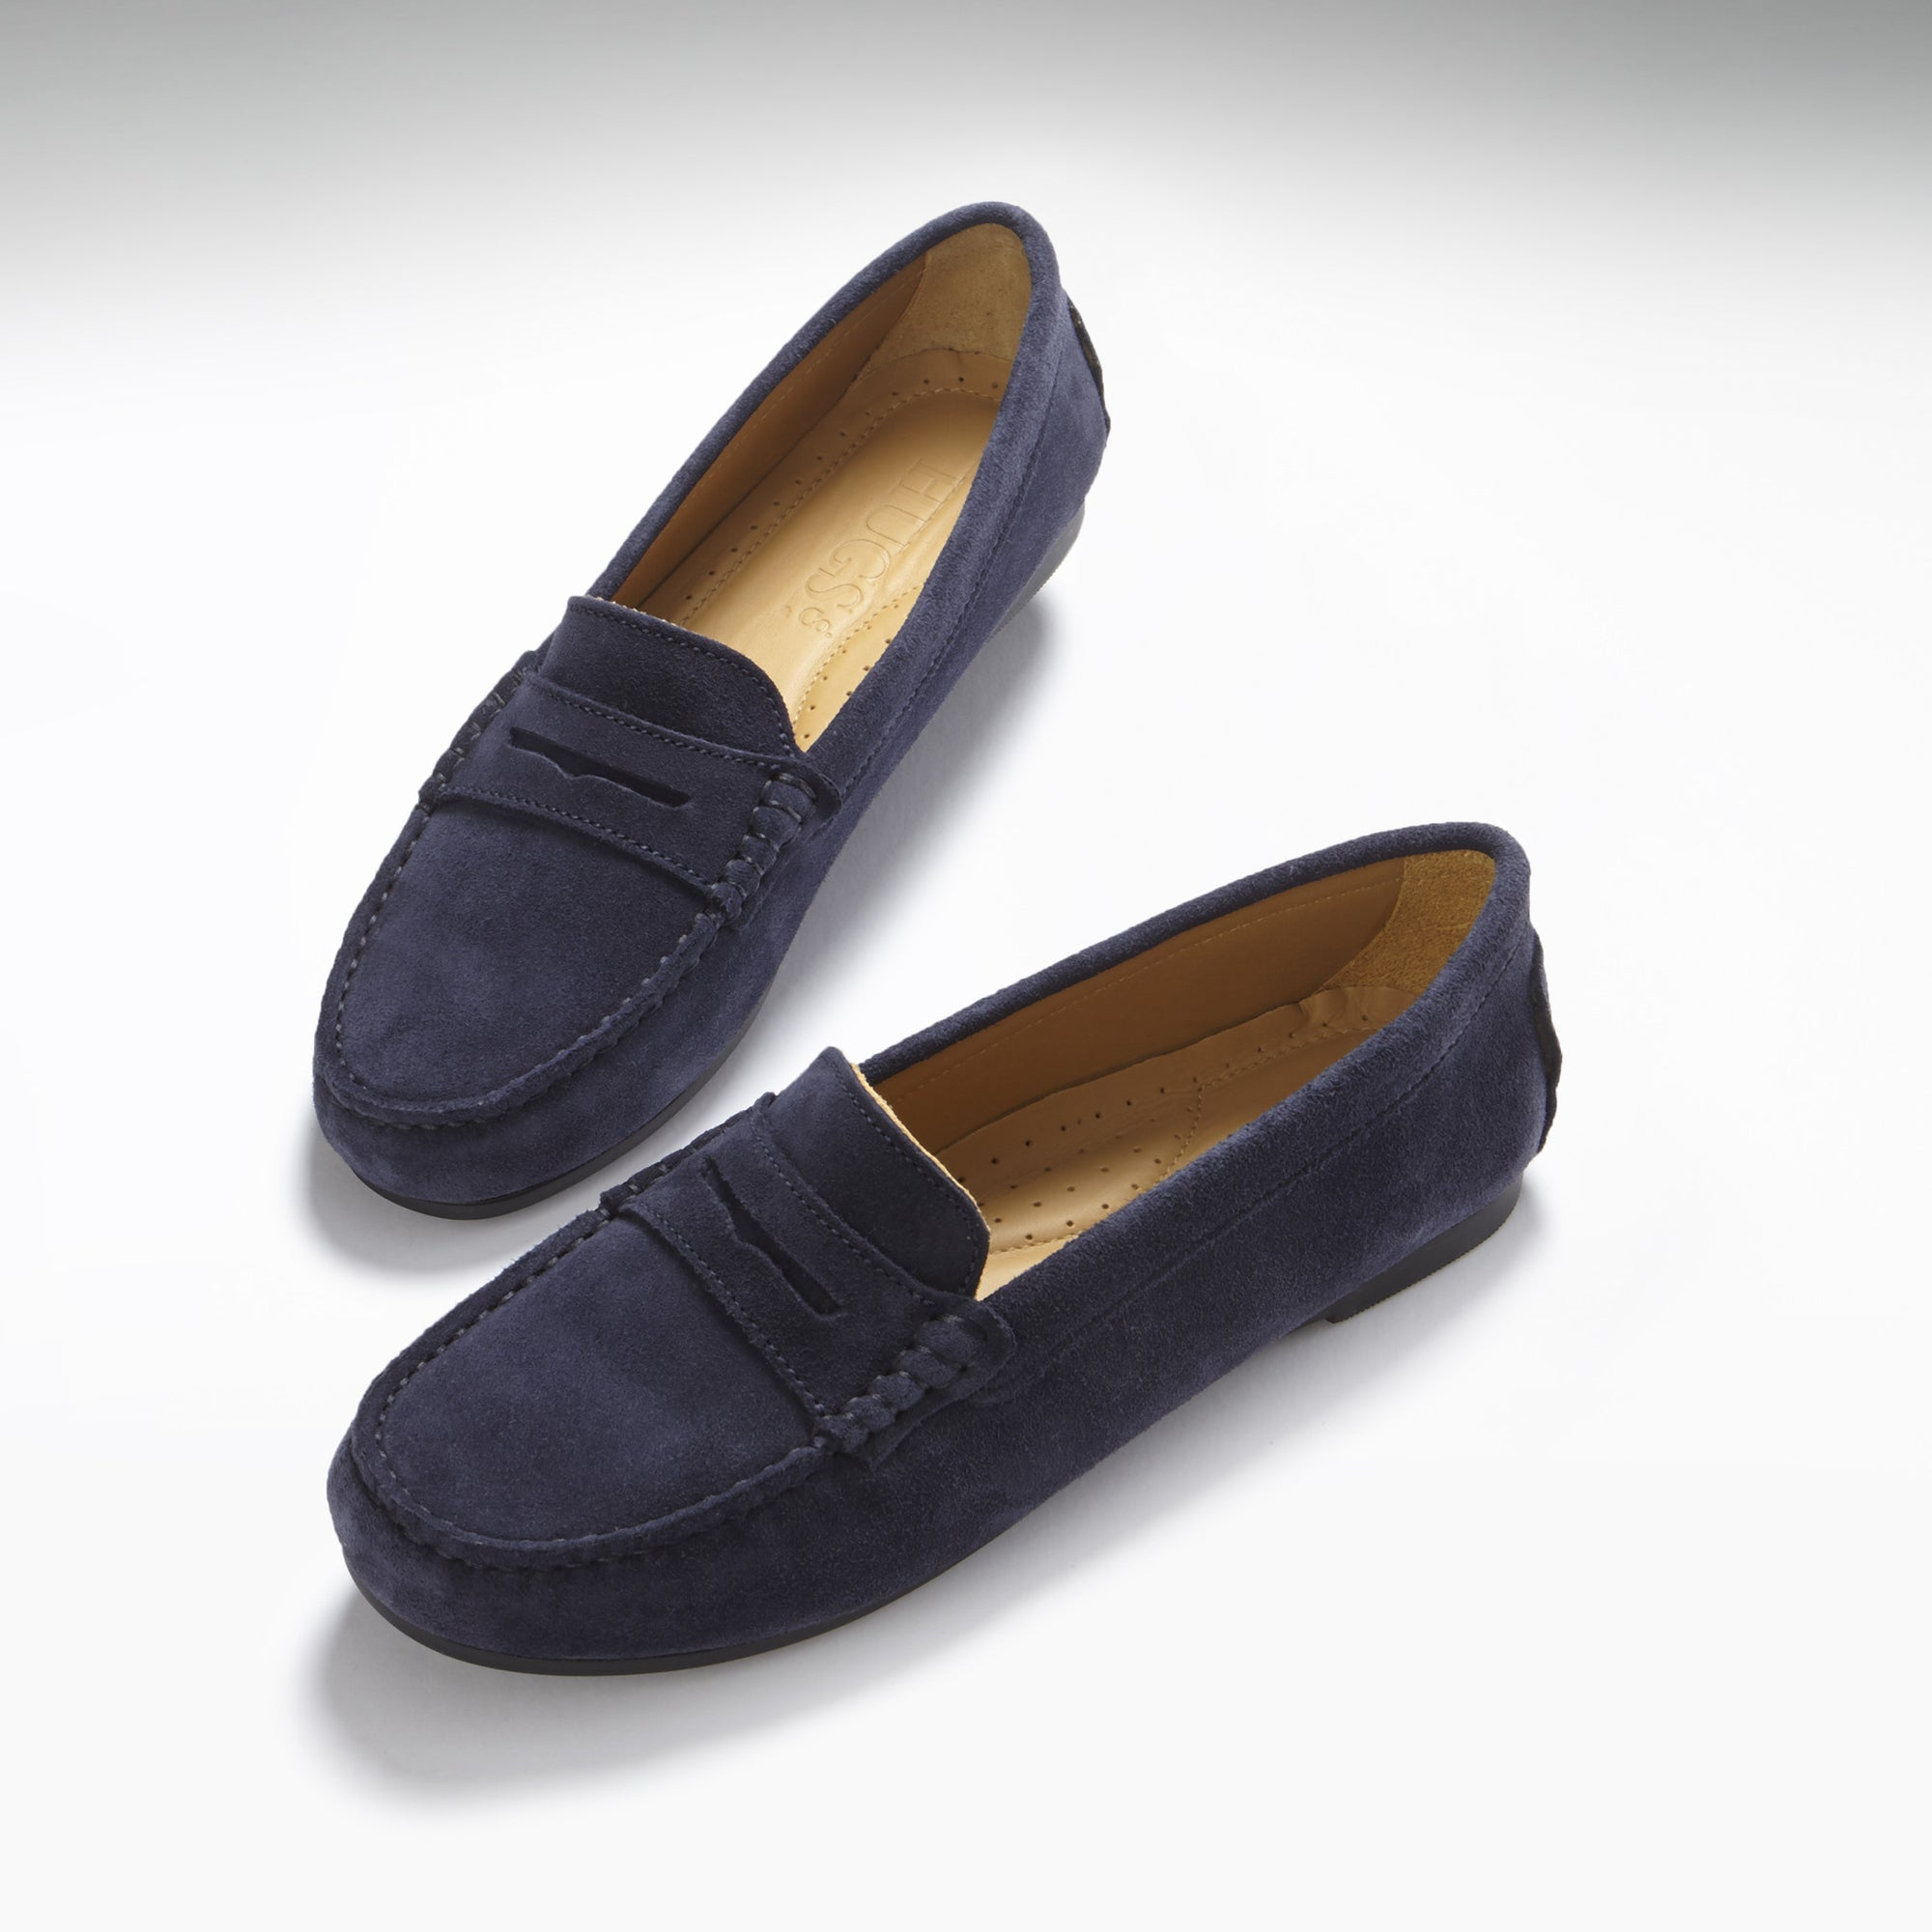 bb79f689401 Women s Penny Driving Loafers Full Rubber Sole